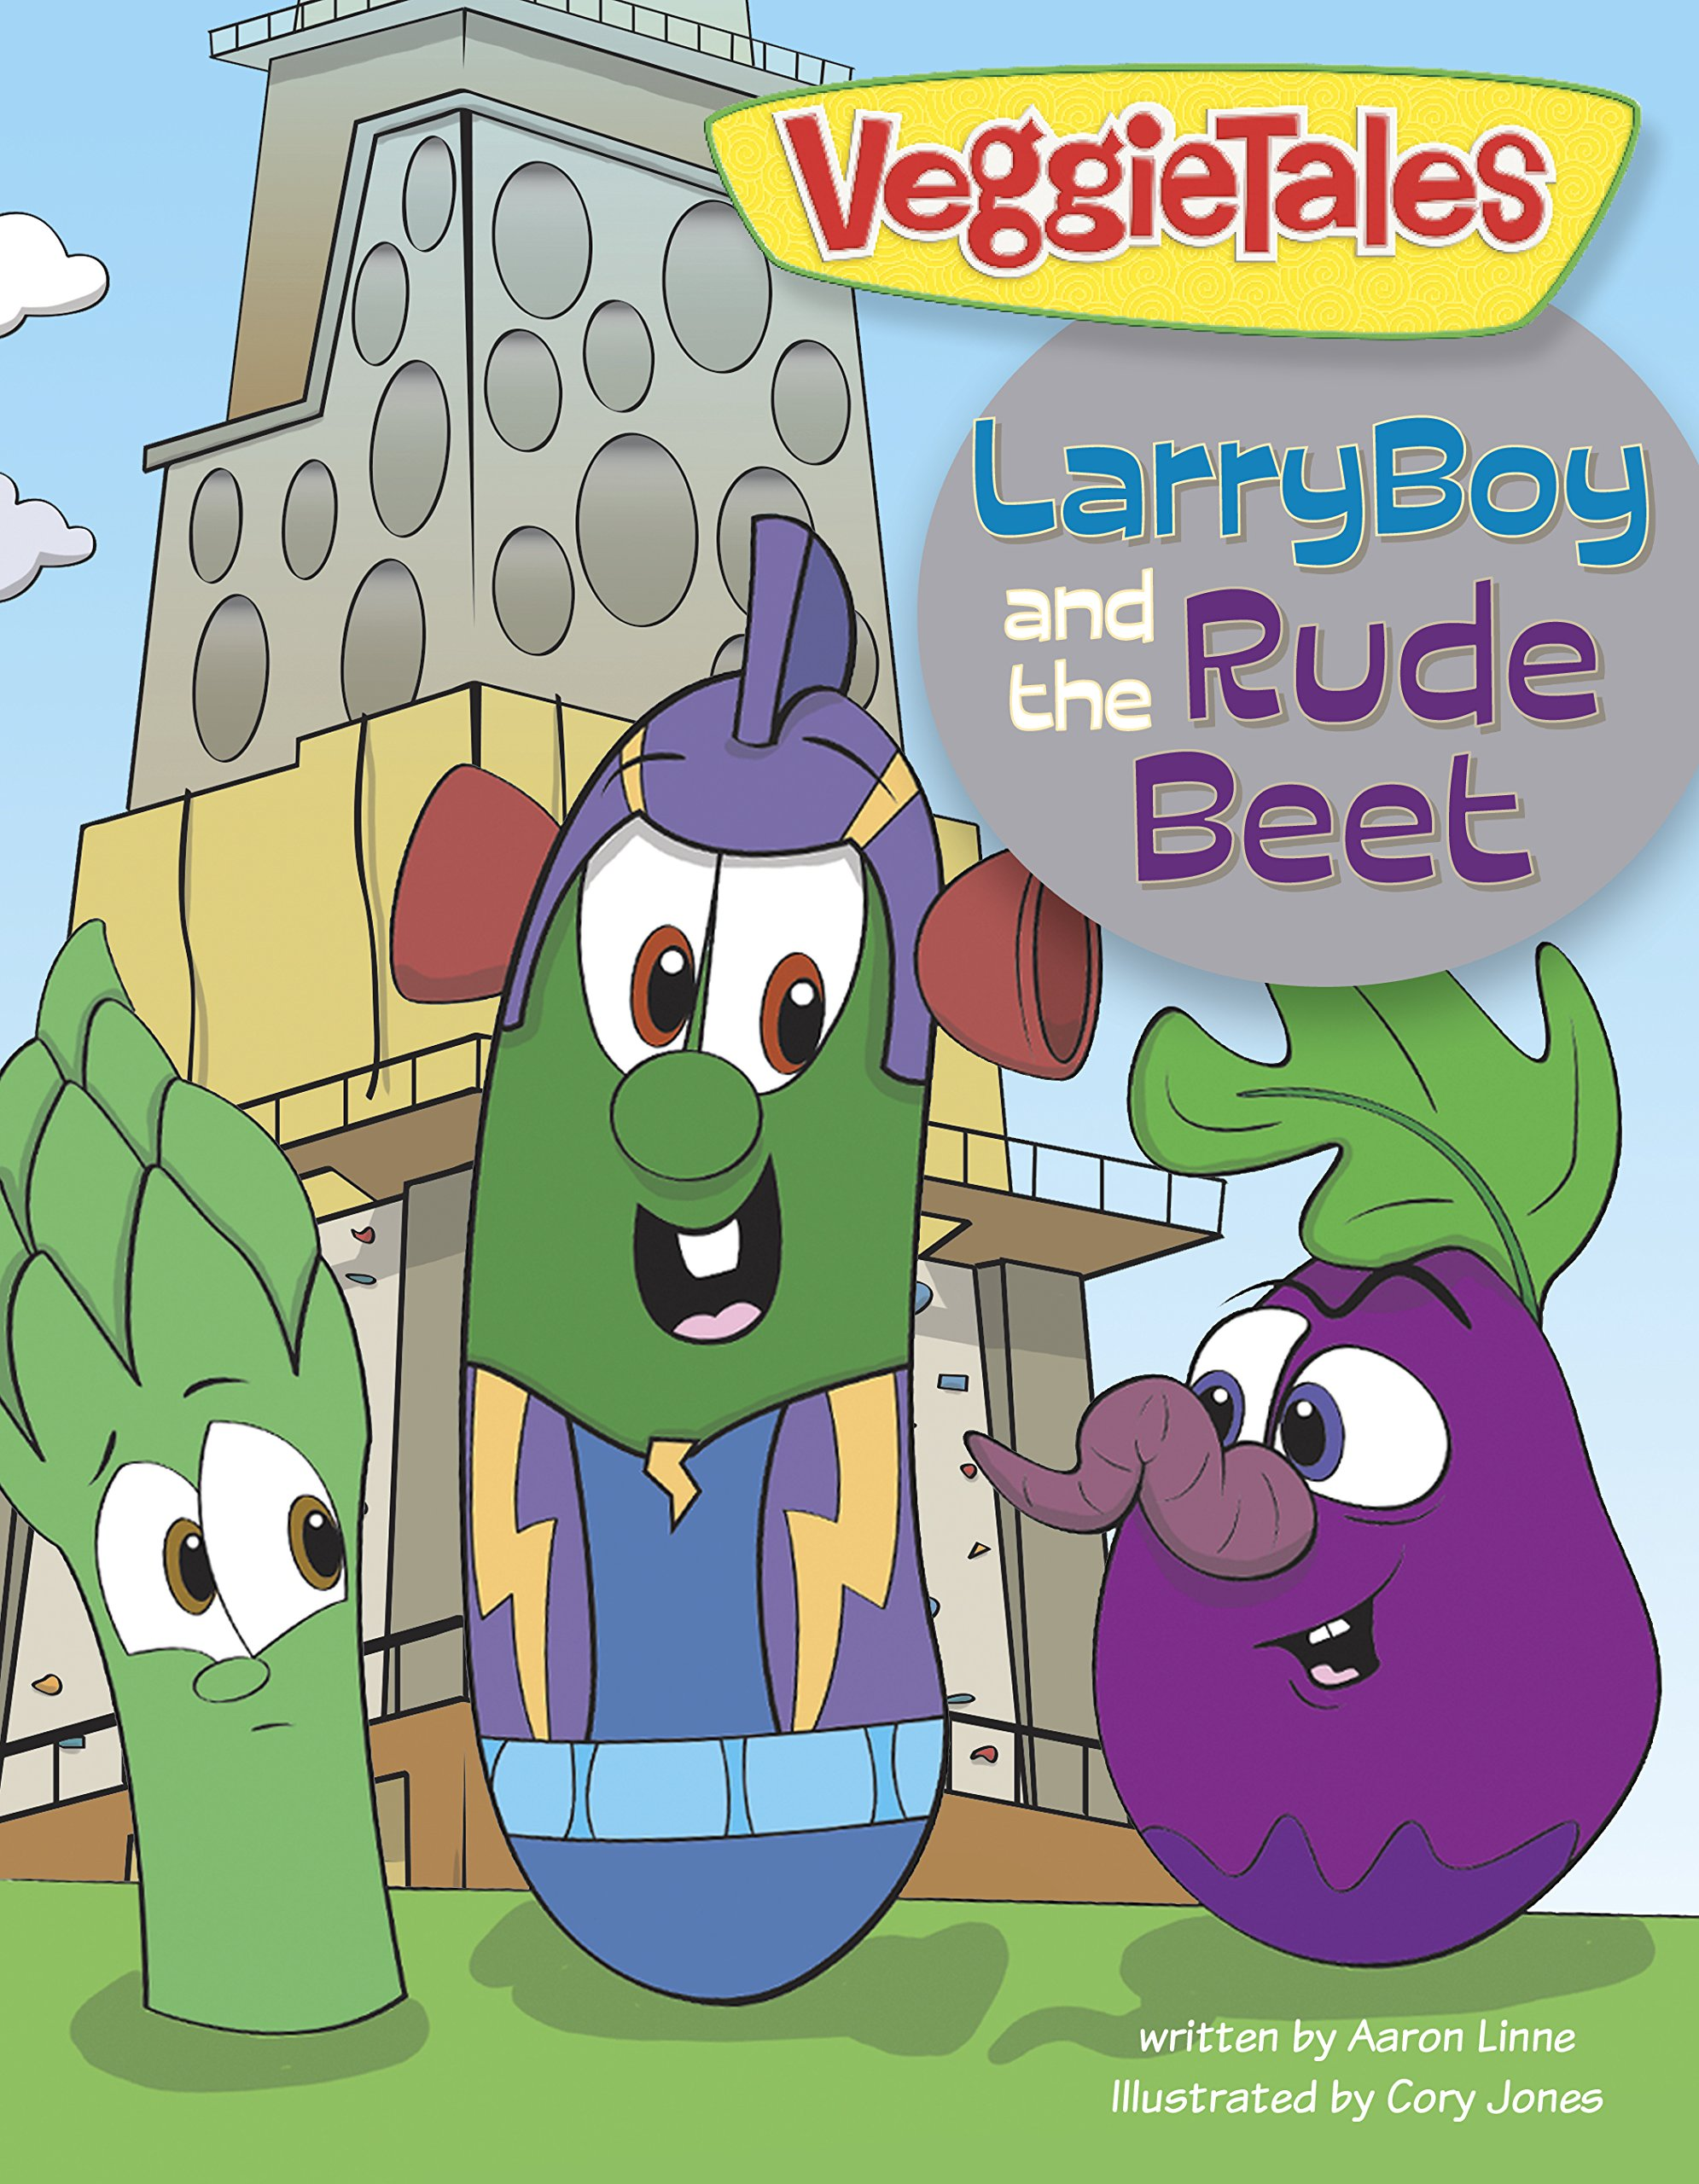 LarryBoy and the Rude Beet